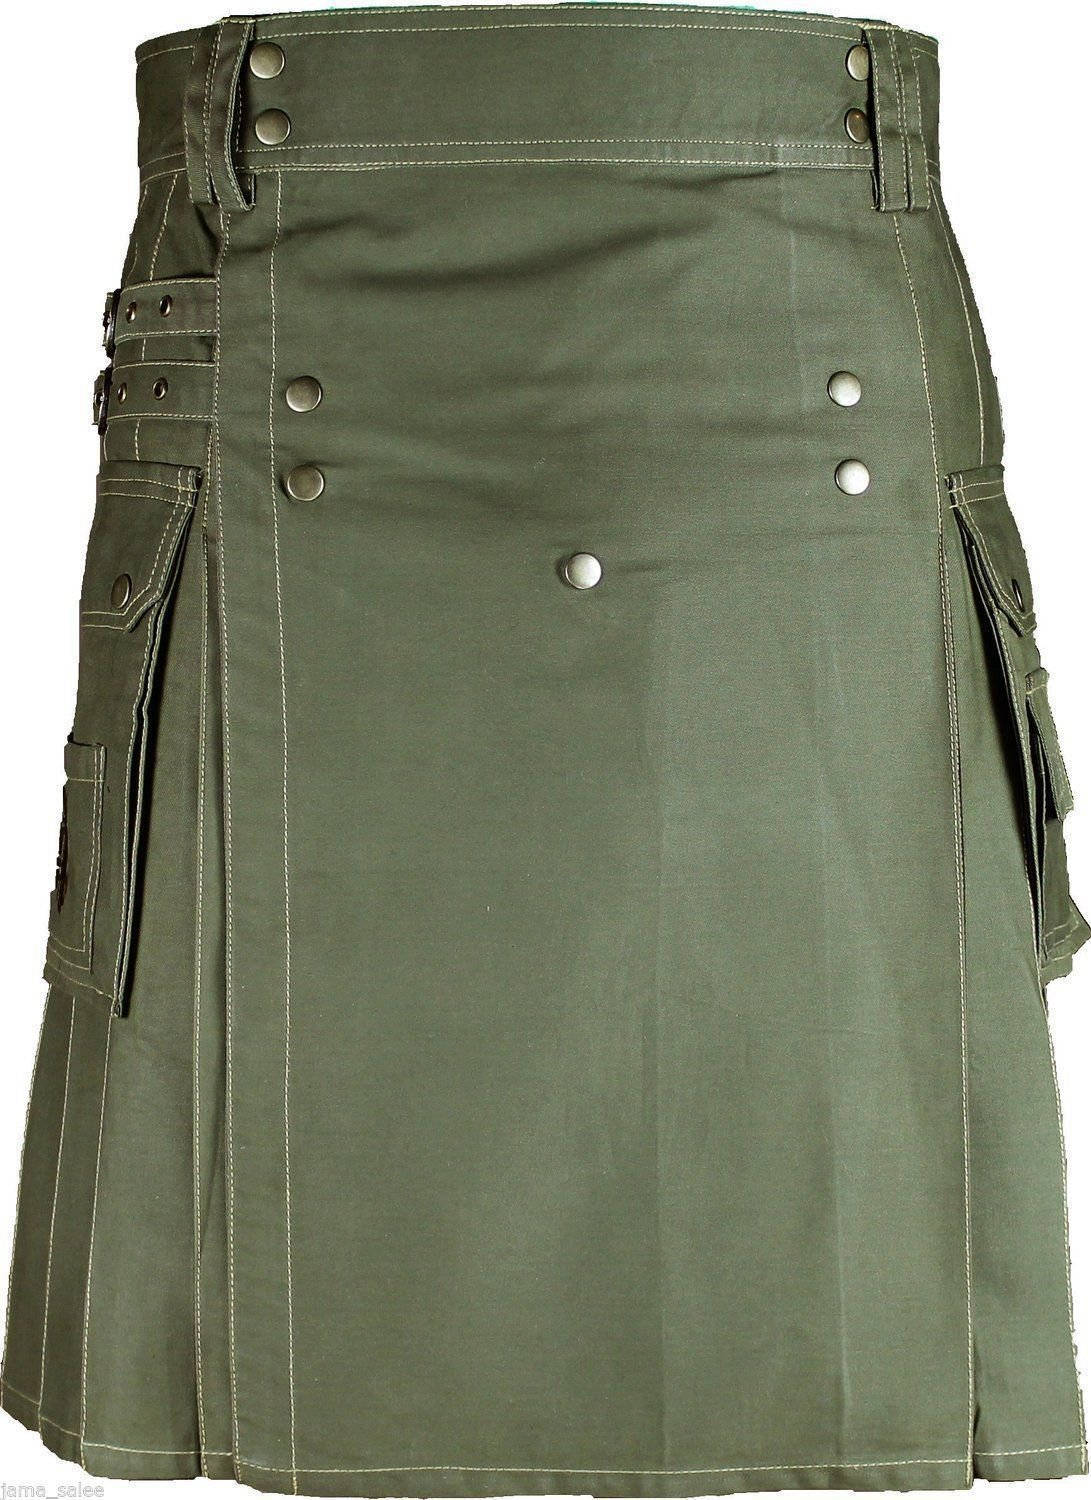 Unisex Modern Utility Kilt Olive Green Cotton Kilt Brass Material Scottish Kilt Fit to 50 Waist